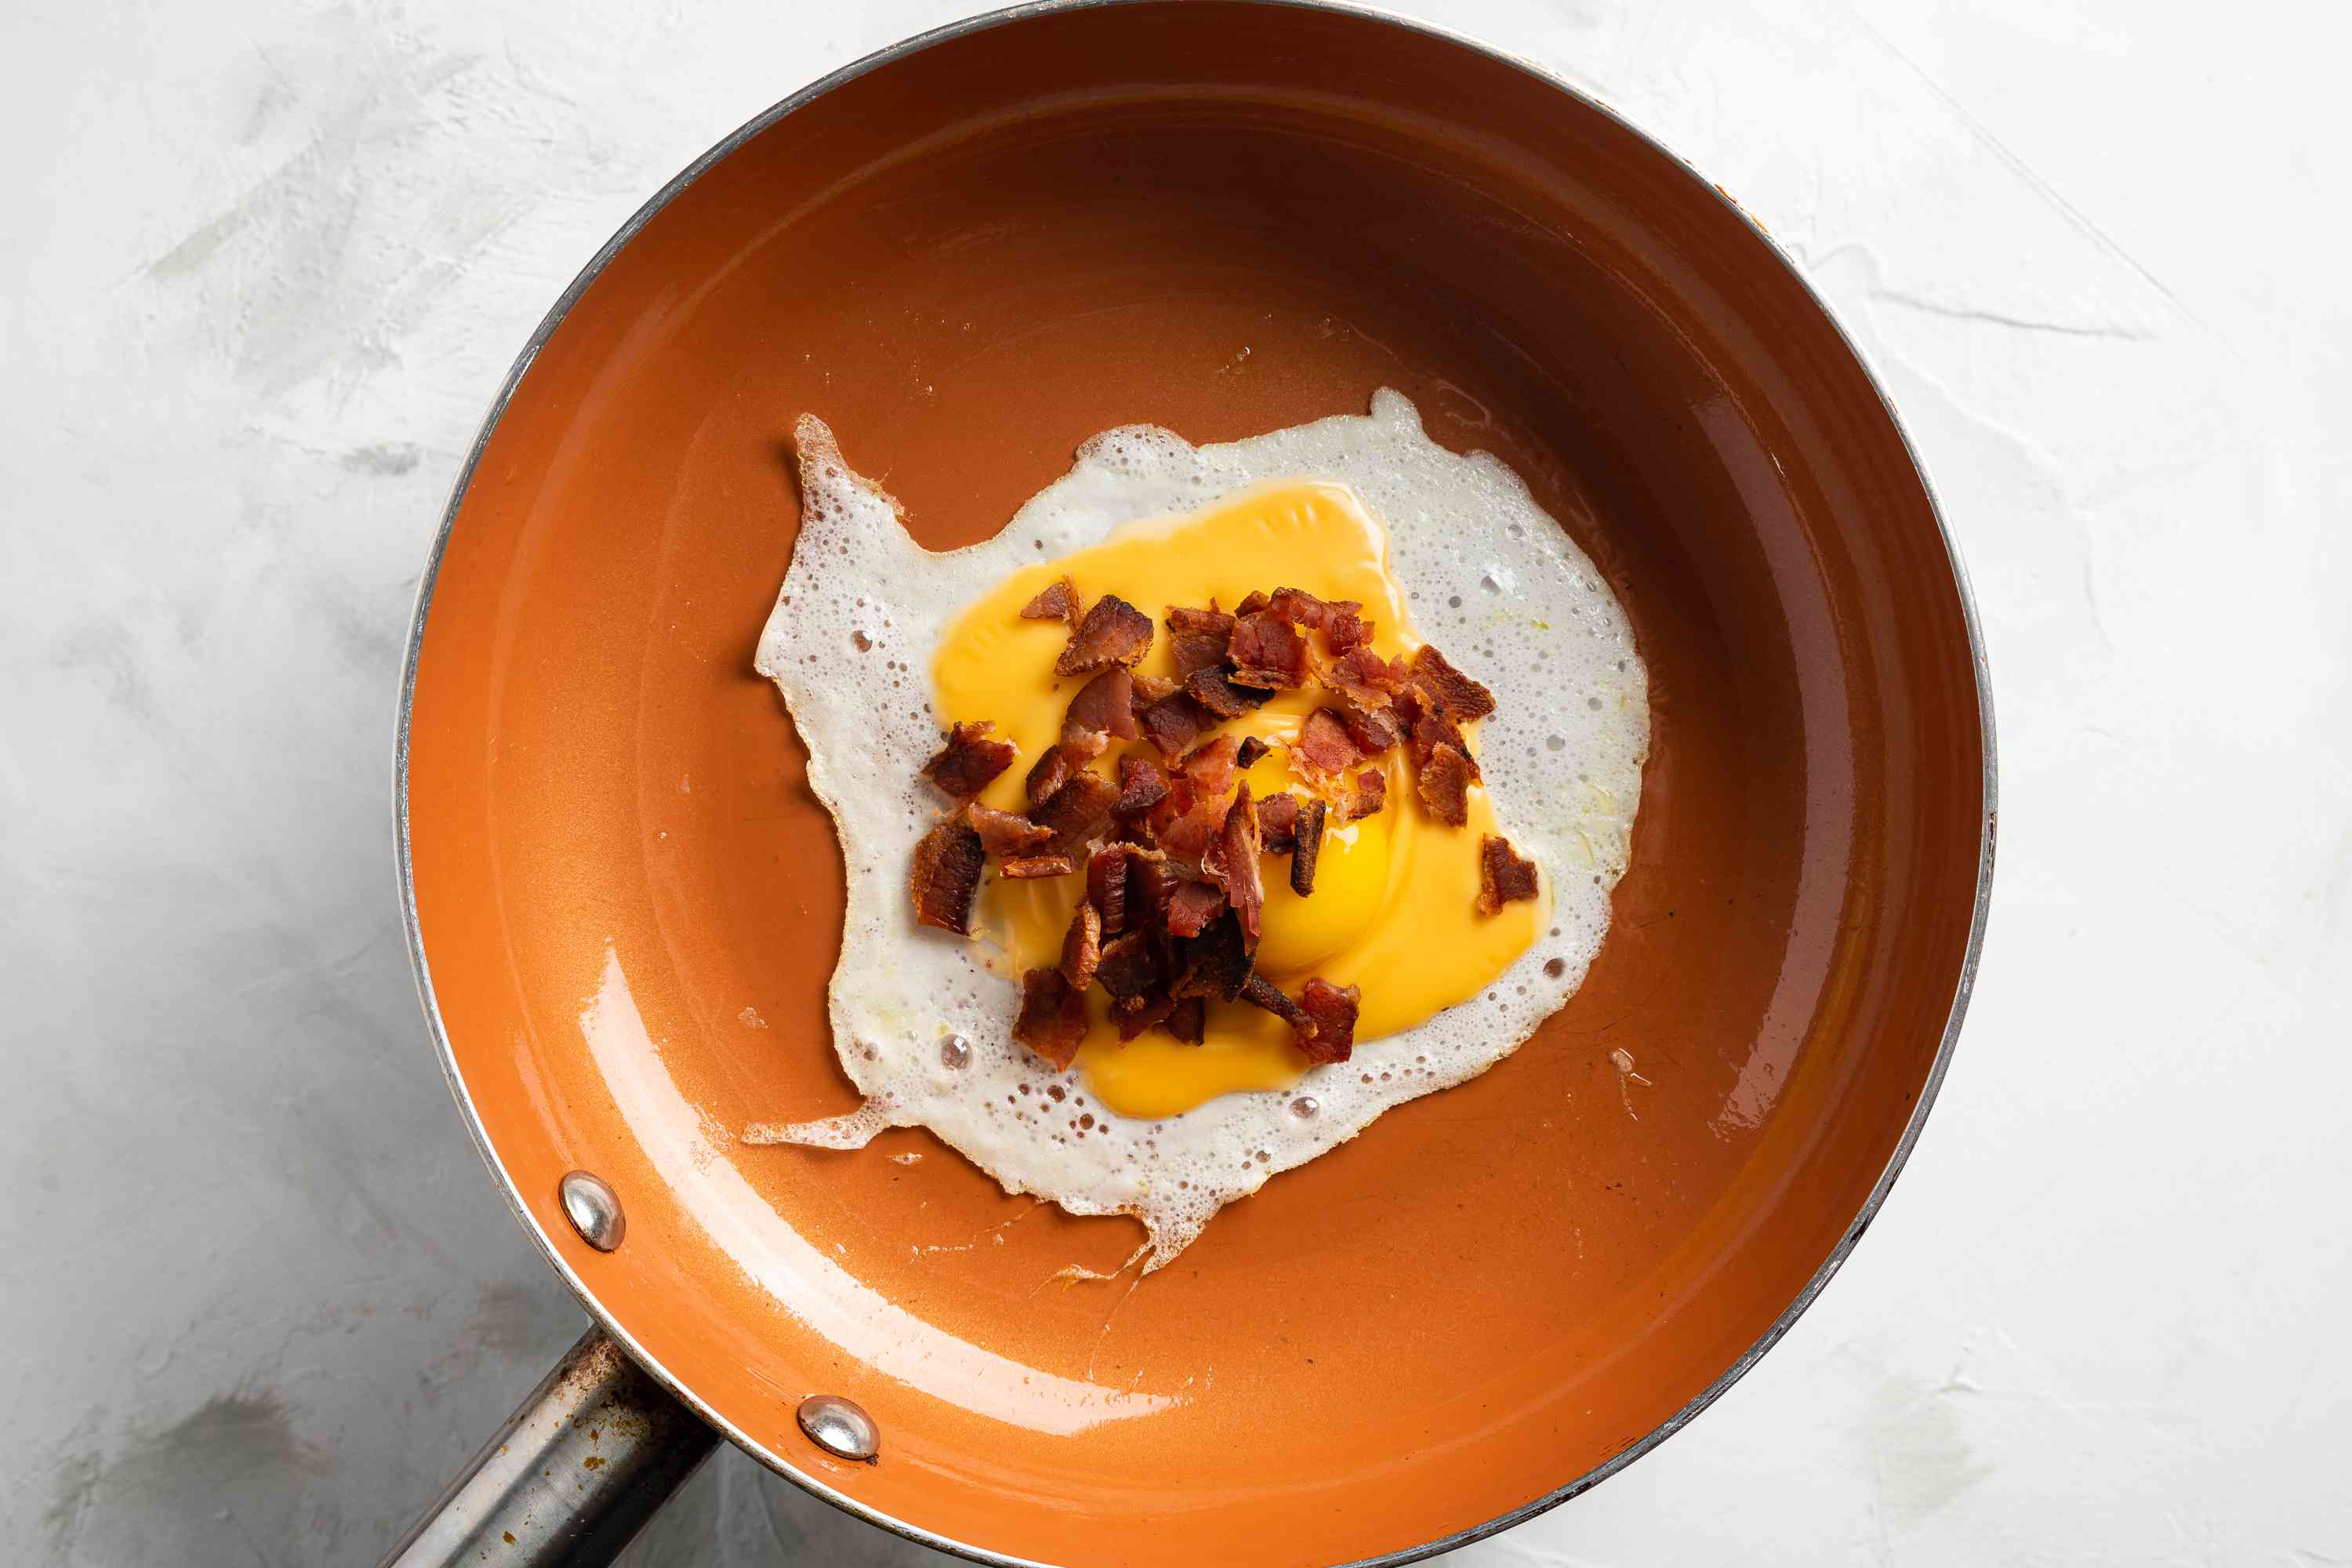 egg yolk and bacon crumbles added to pan with egg white and cheese